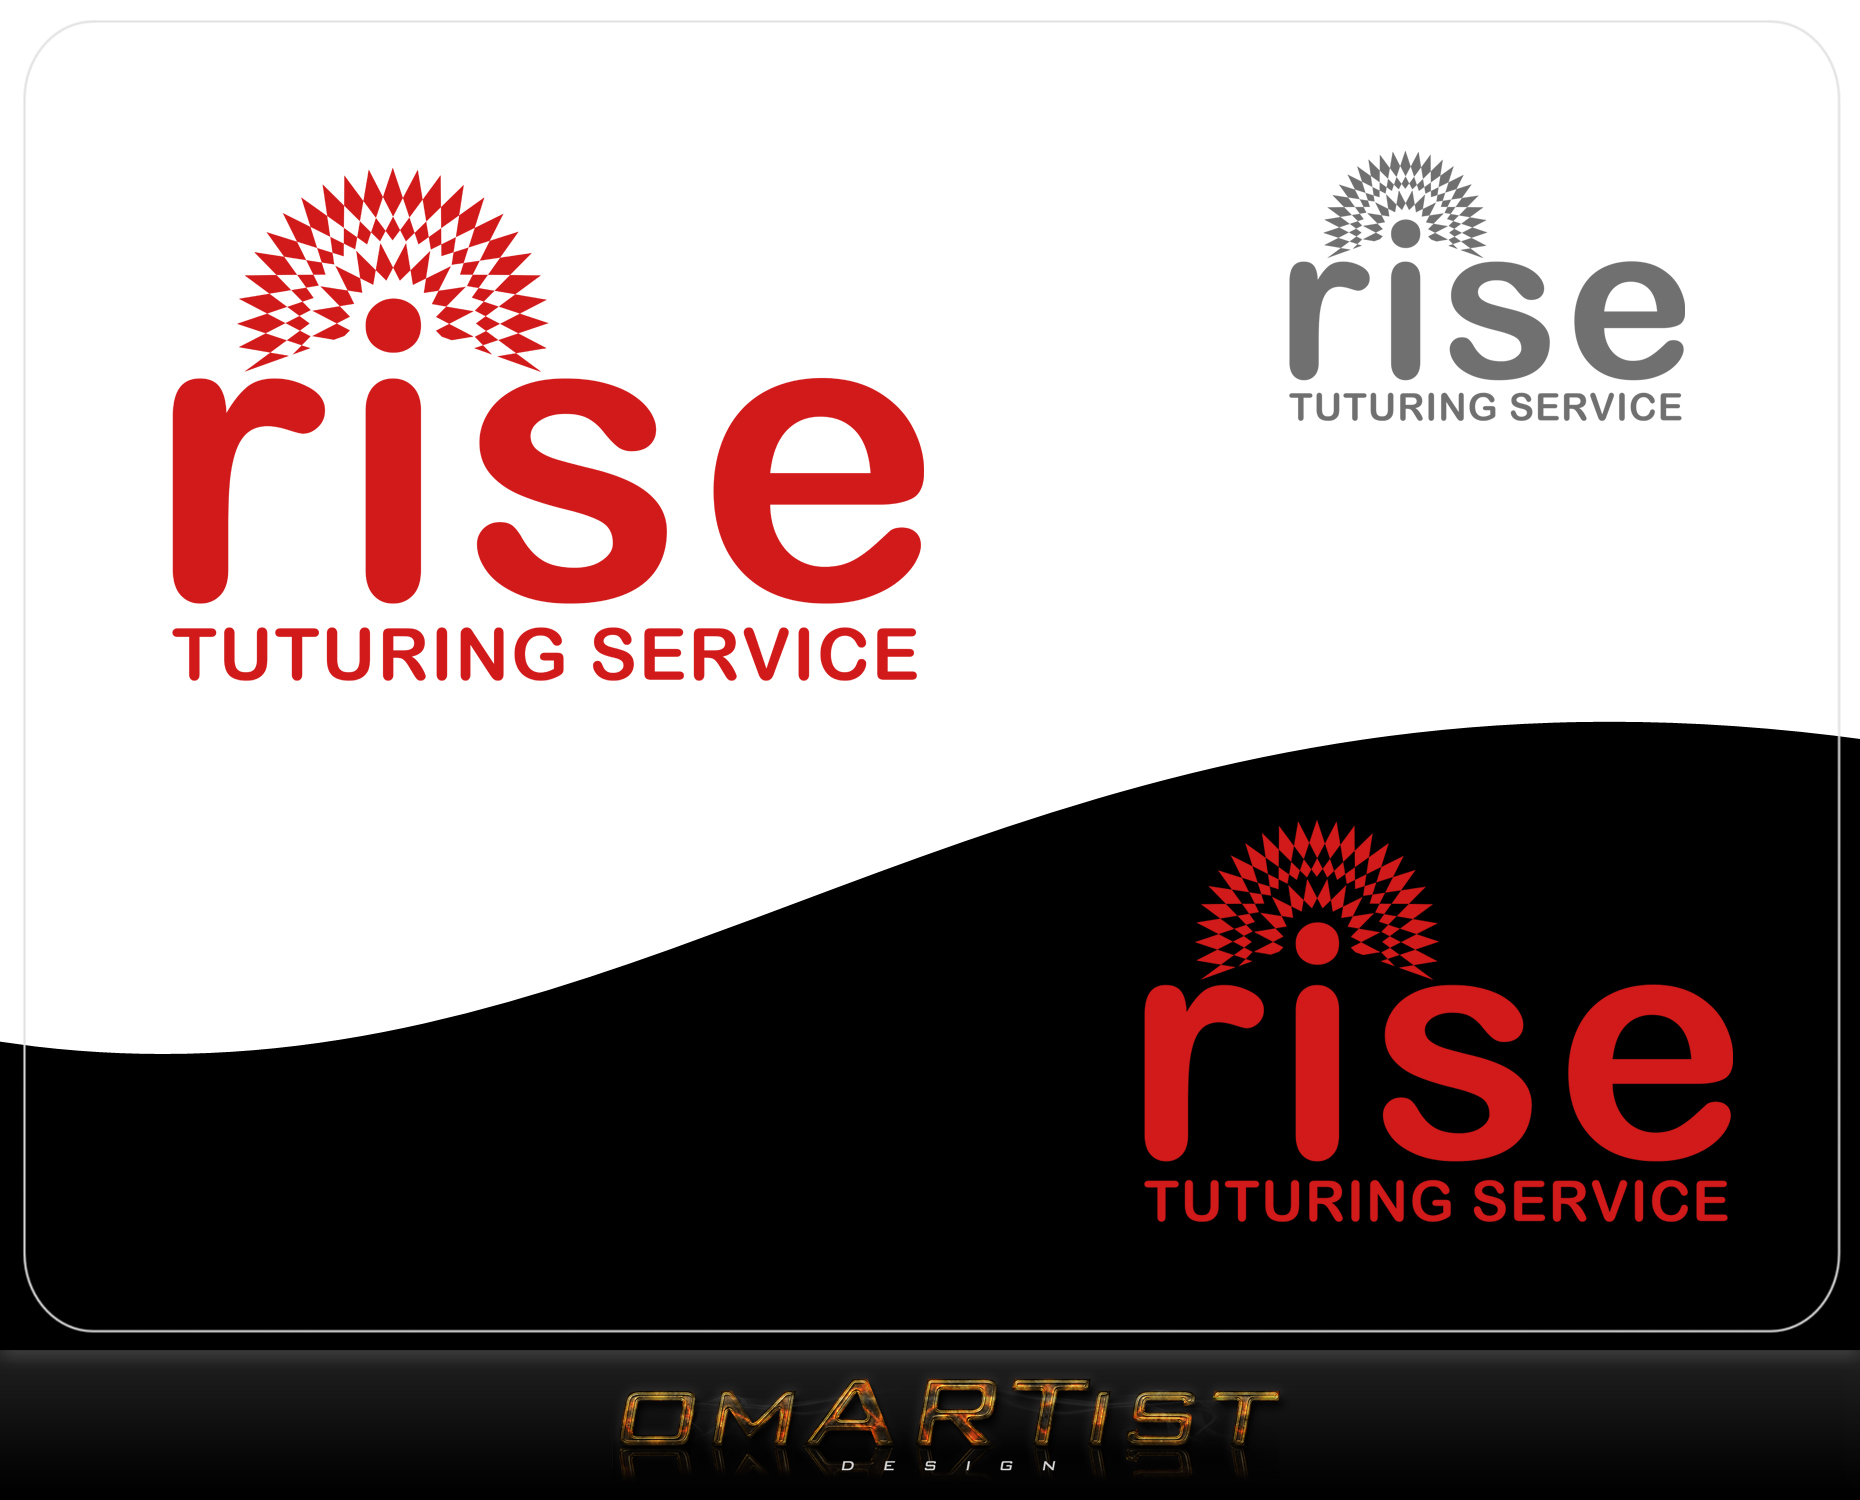 Logo Design by omARTist - Entry No. 226 in the Logo Design Contest Imaginative Logo Design for Rise Tutoring Service.